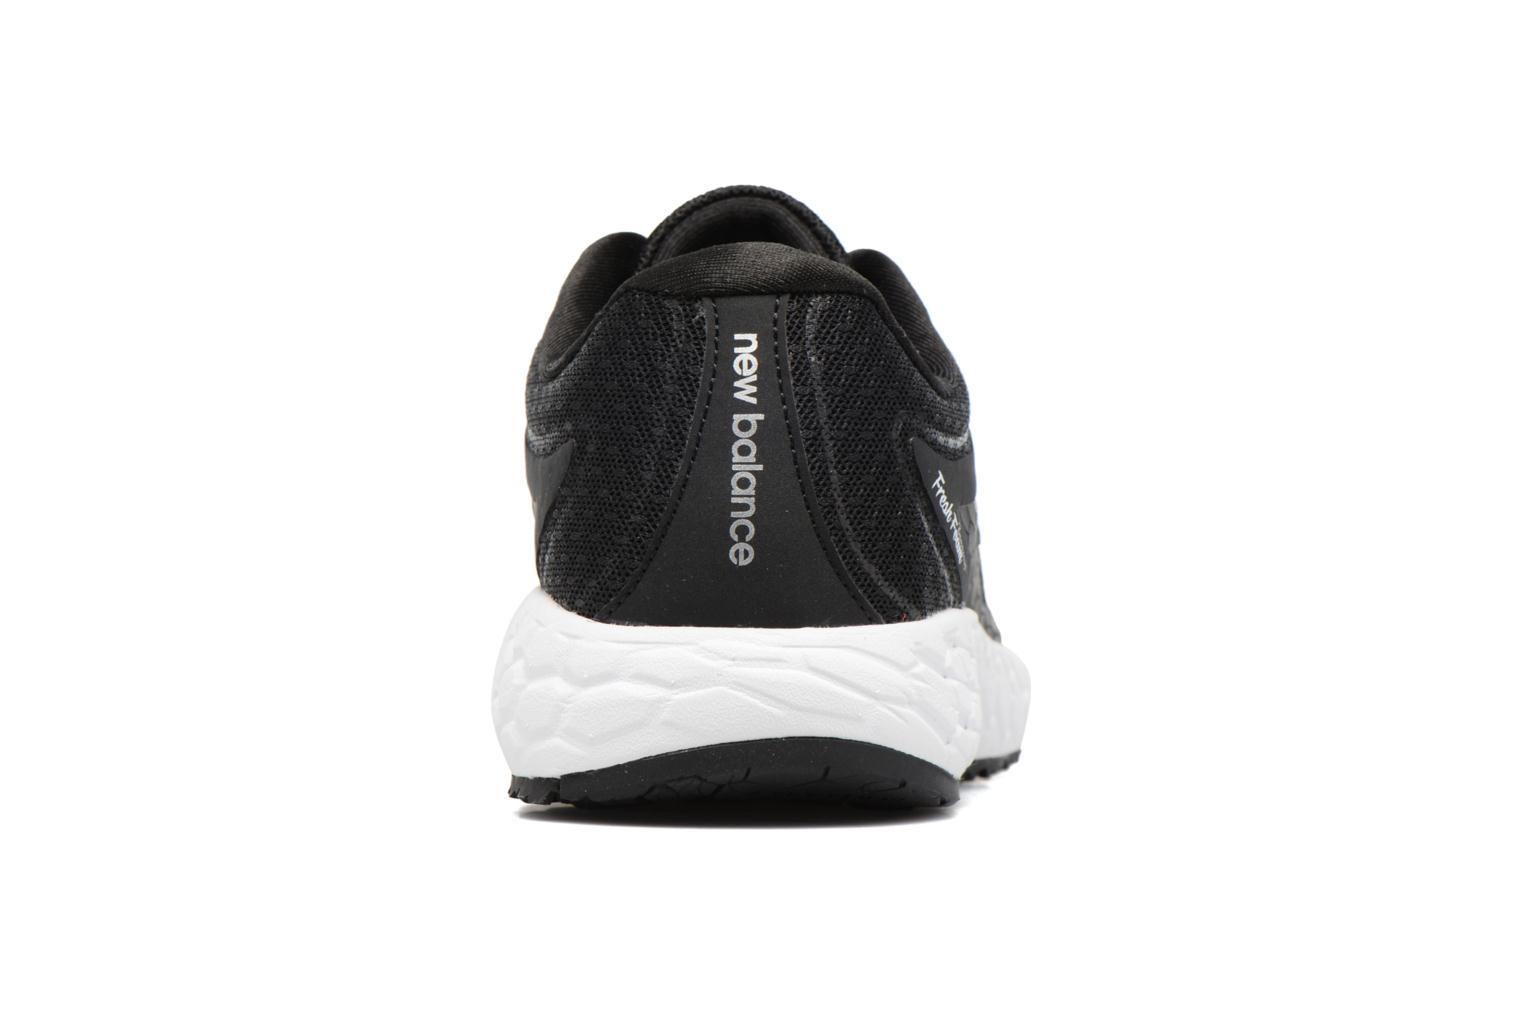 MBORA BK3 Black/White